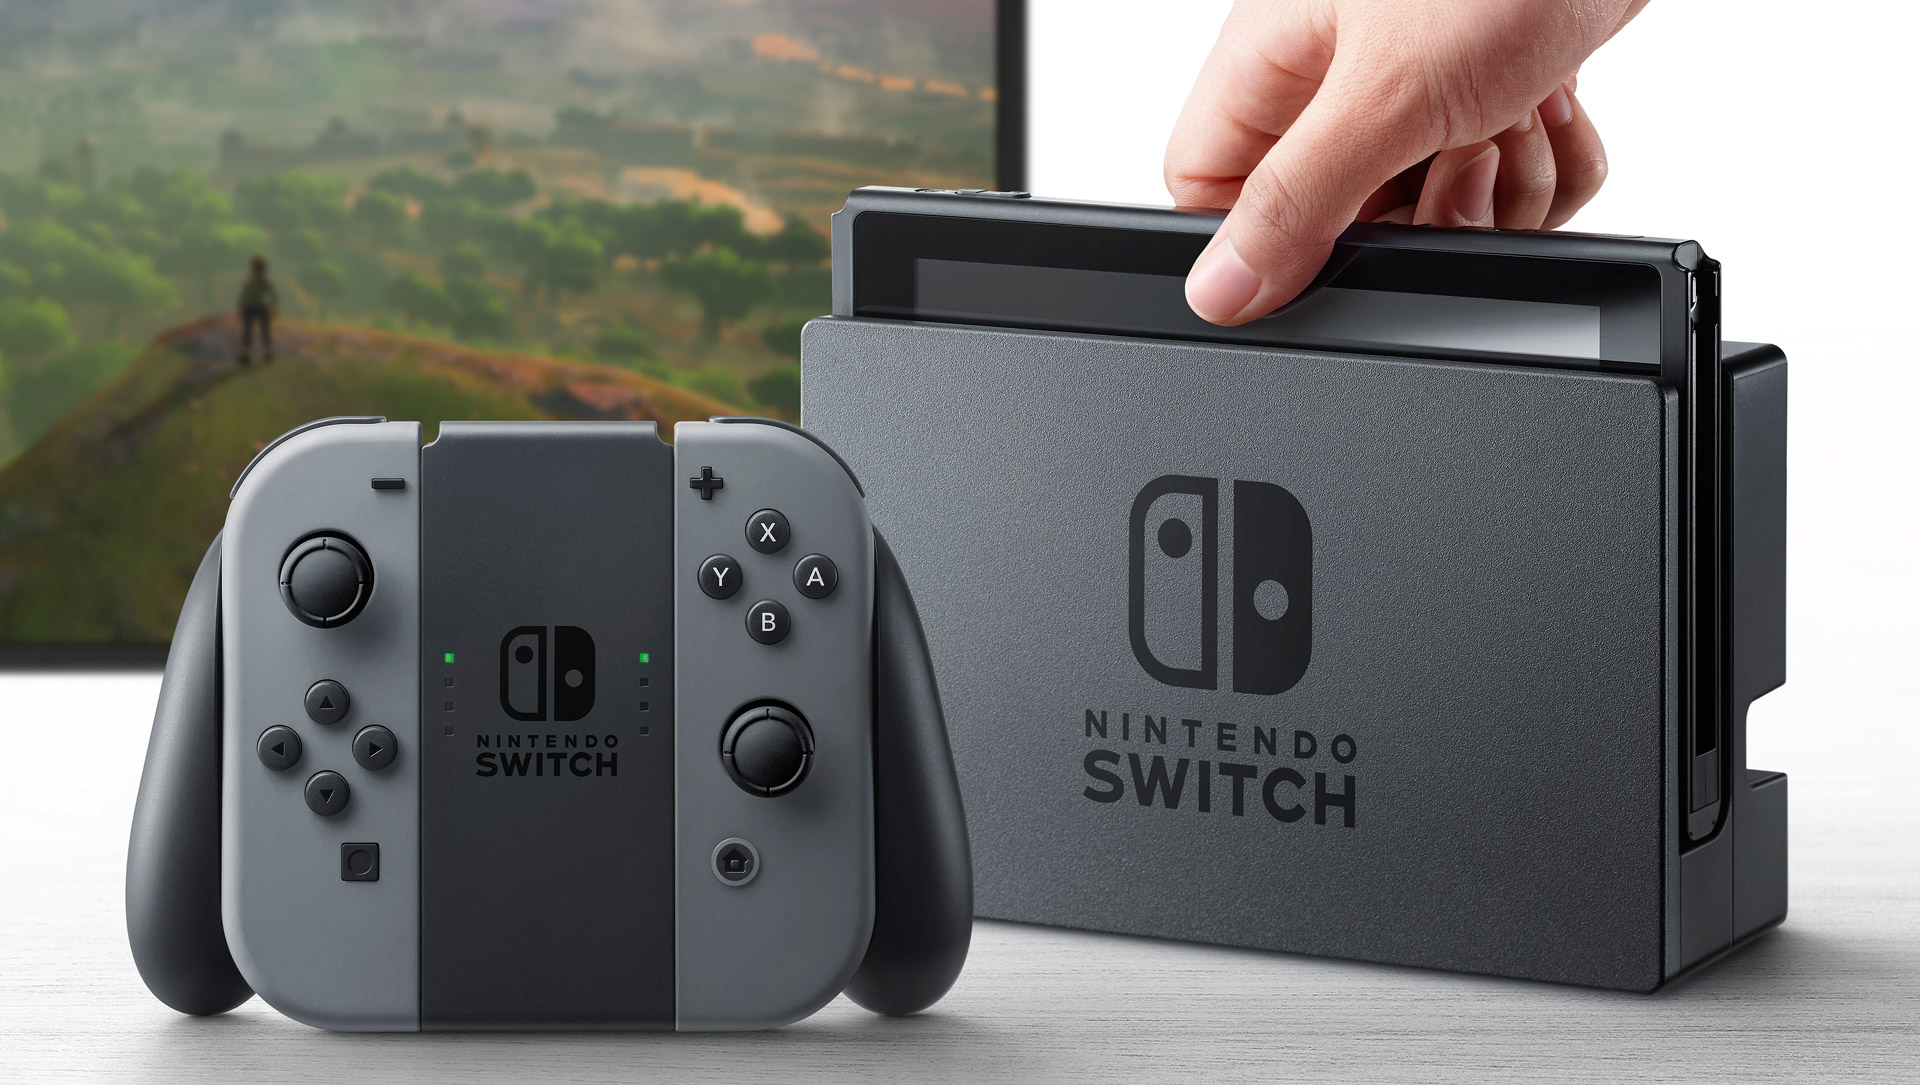 Nintendo reveals their new Switch console